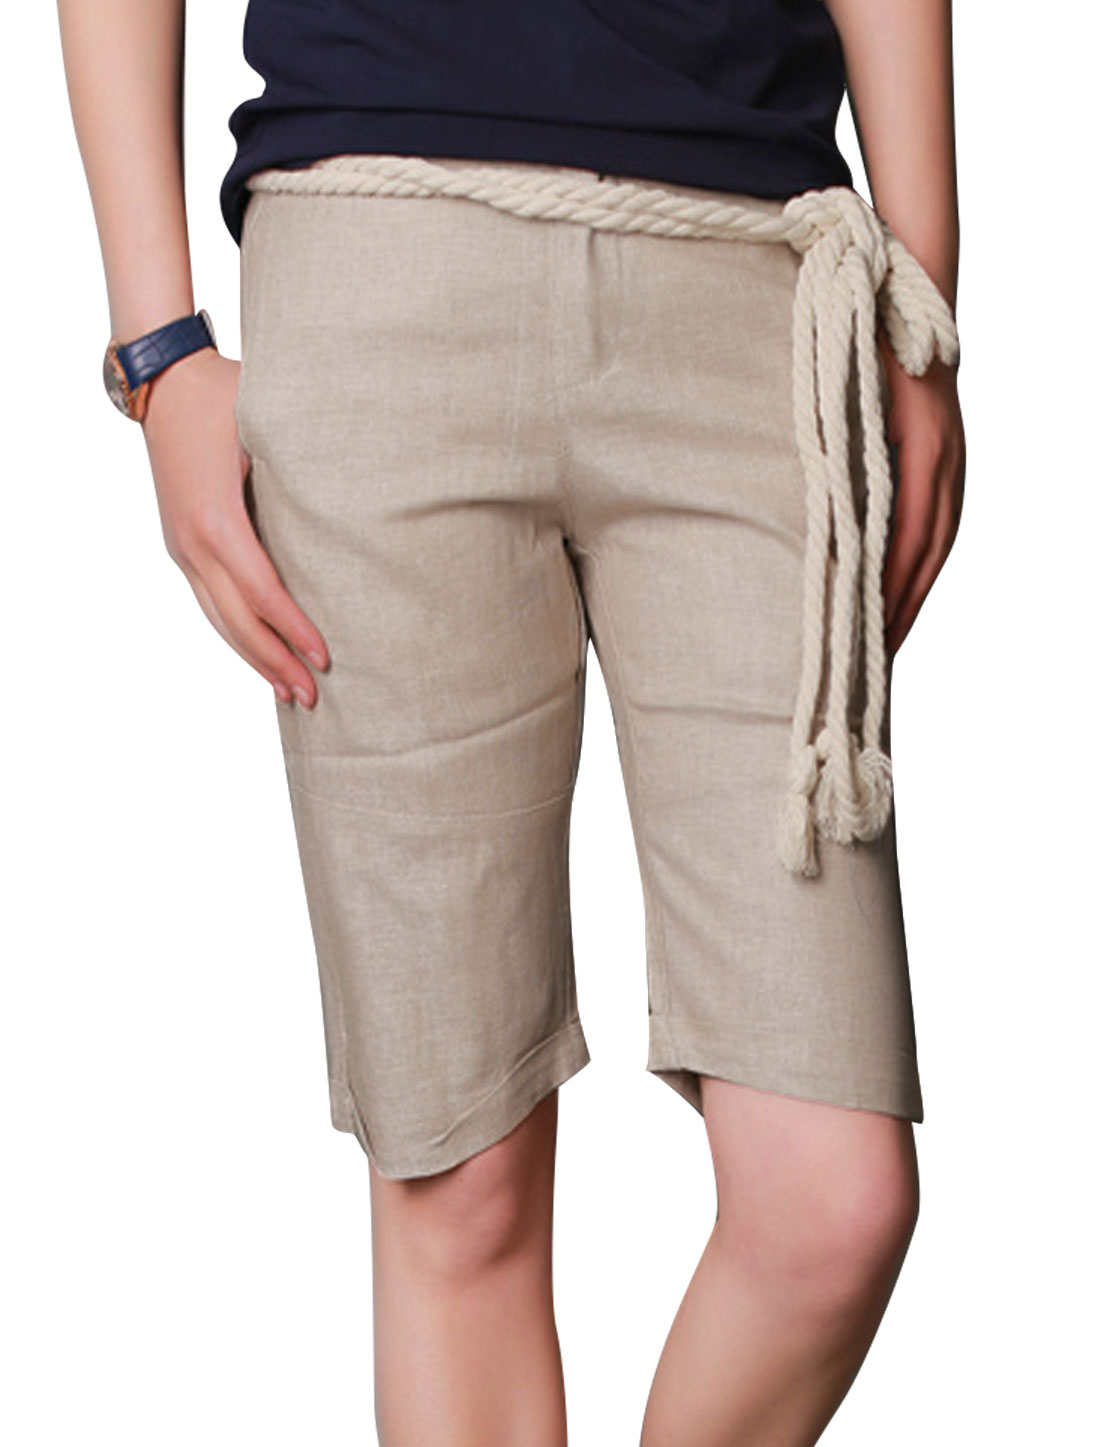 Men Pockets Front Belt Loop Chic Linen Shorts w Rope Strap Beige W30